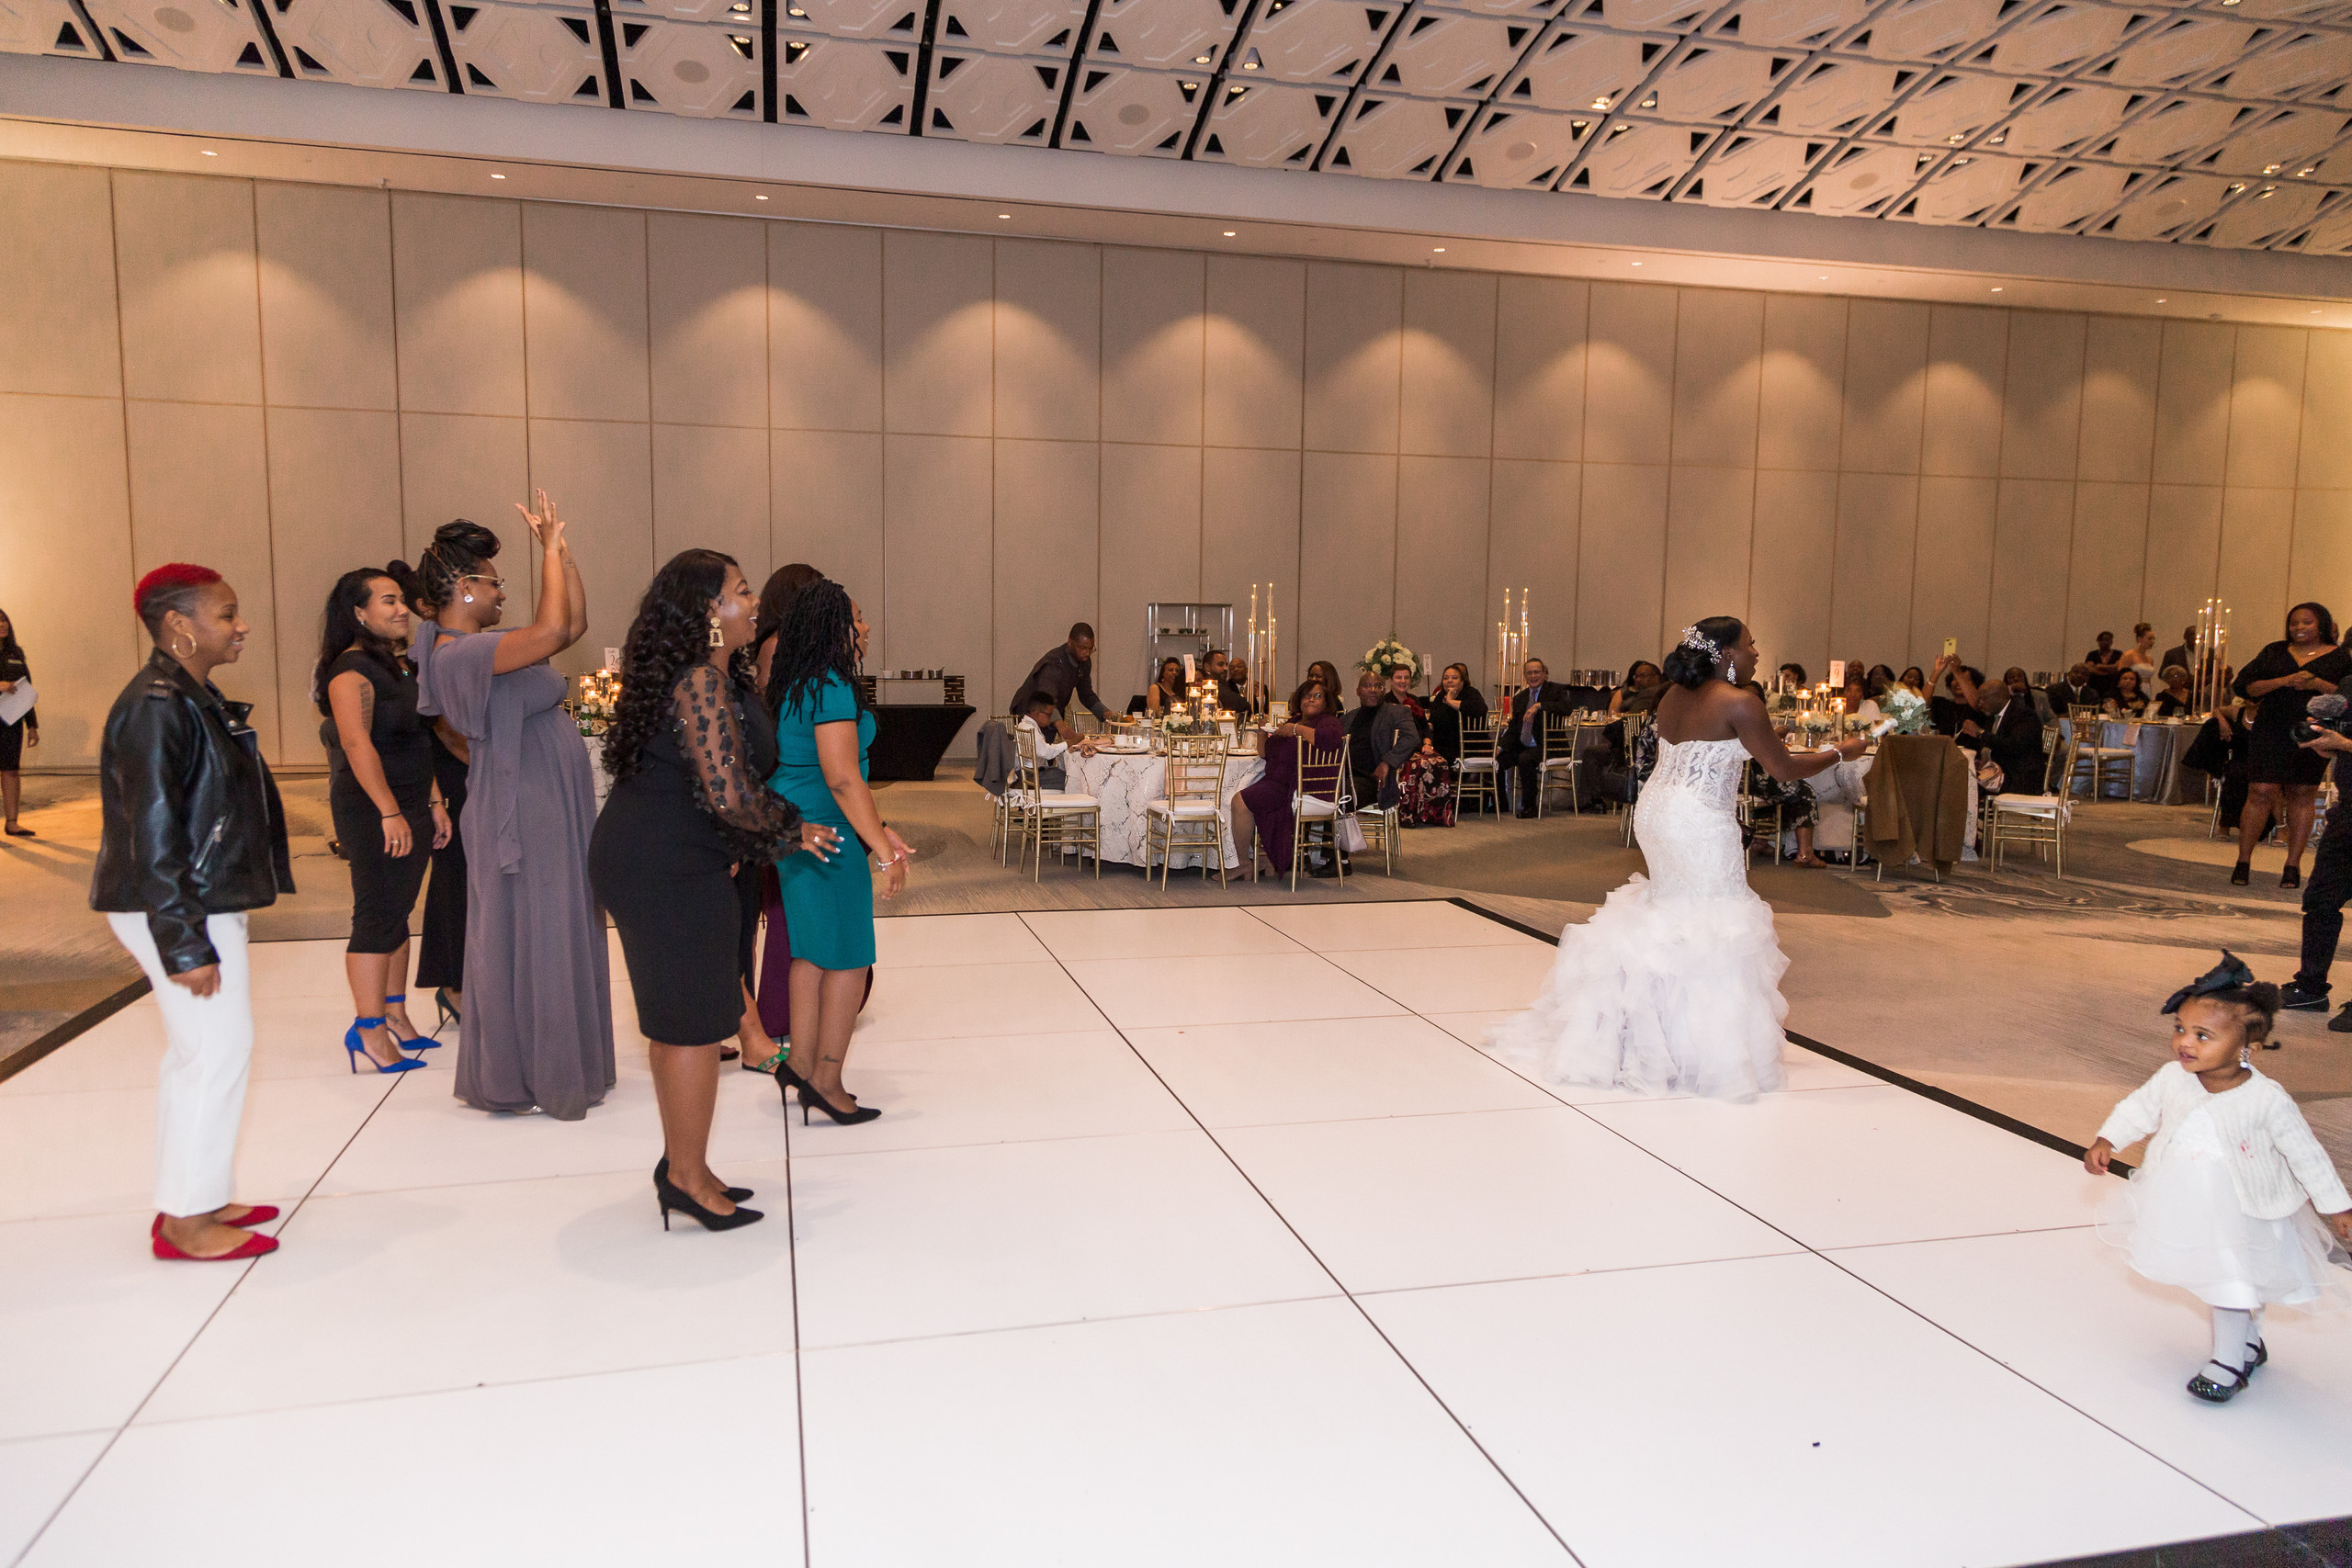 The bride prepares to toss the bouquet during the wedding reception at the Hilton Main in Norfolk, Virginia.